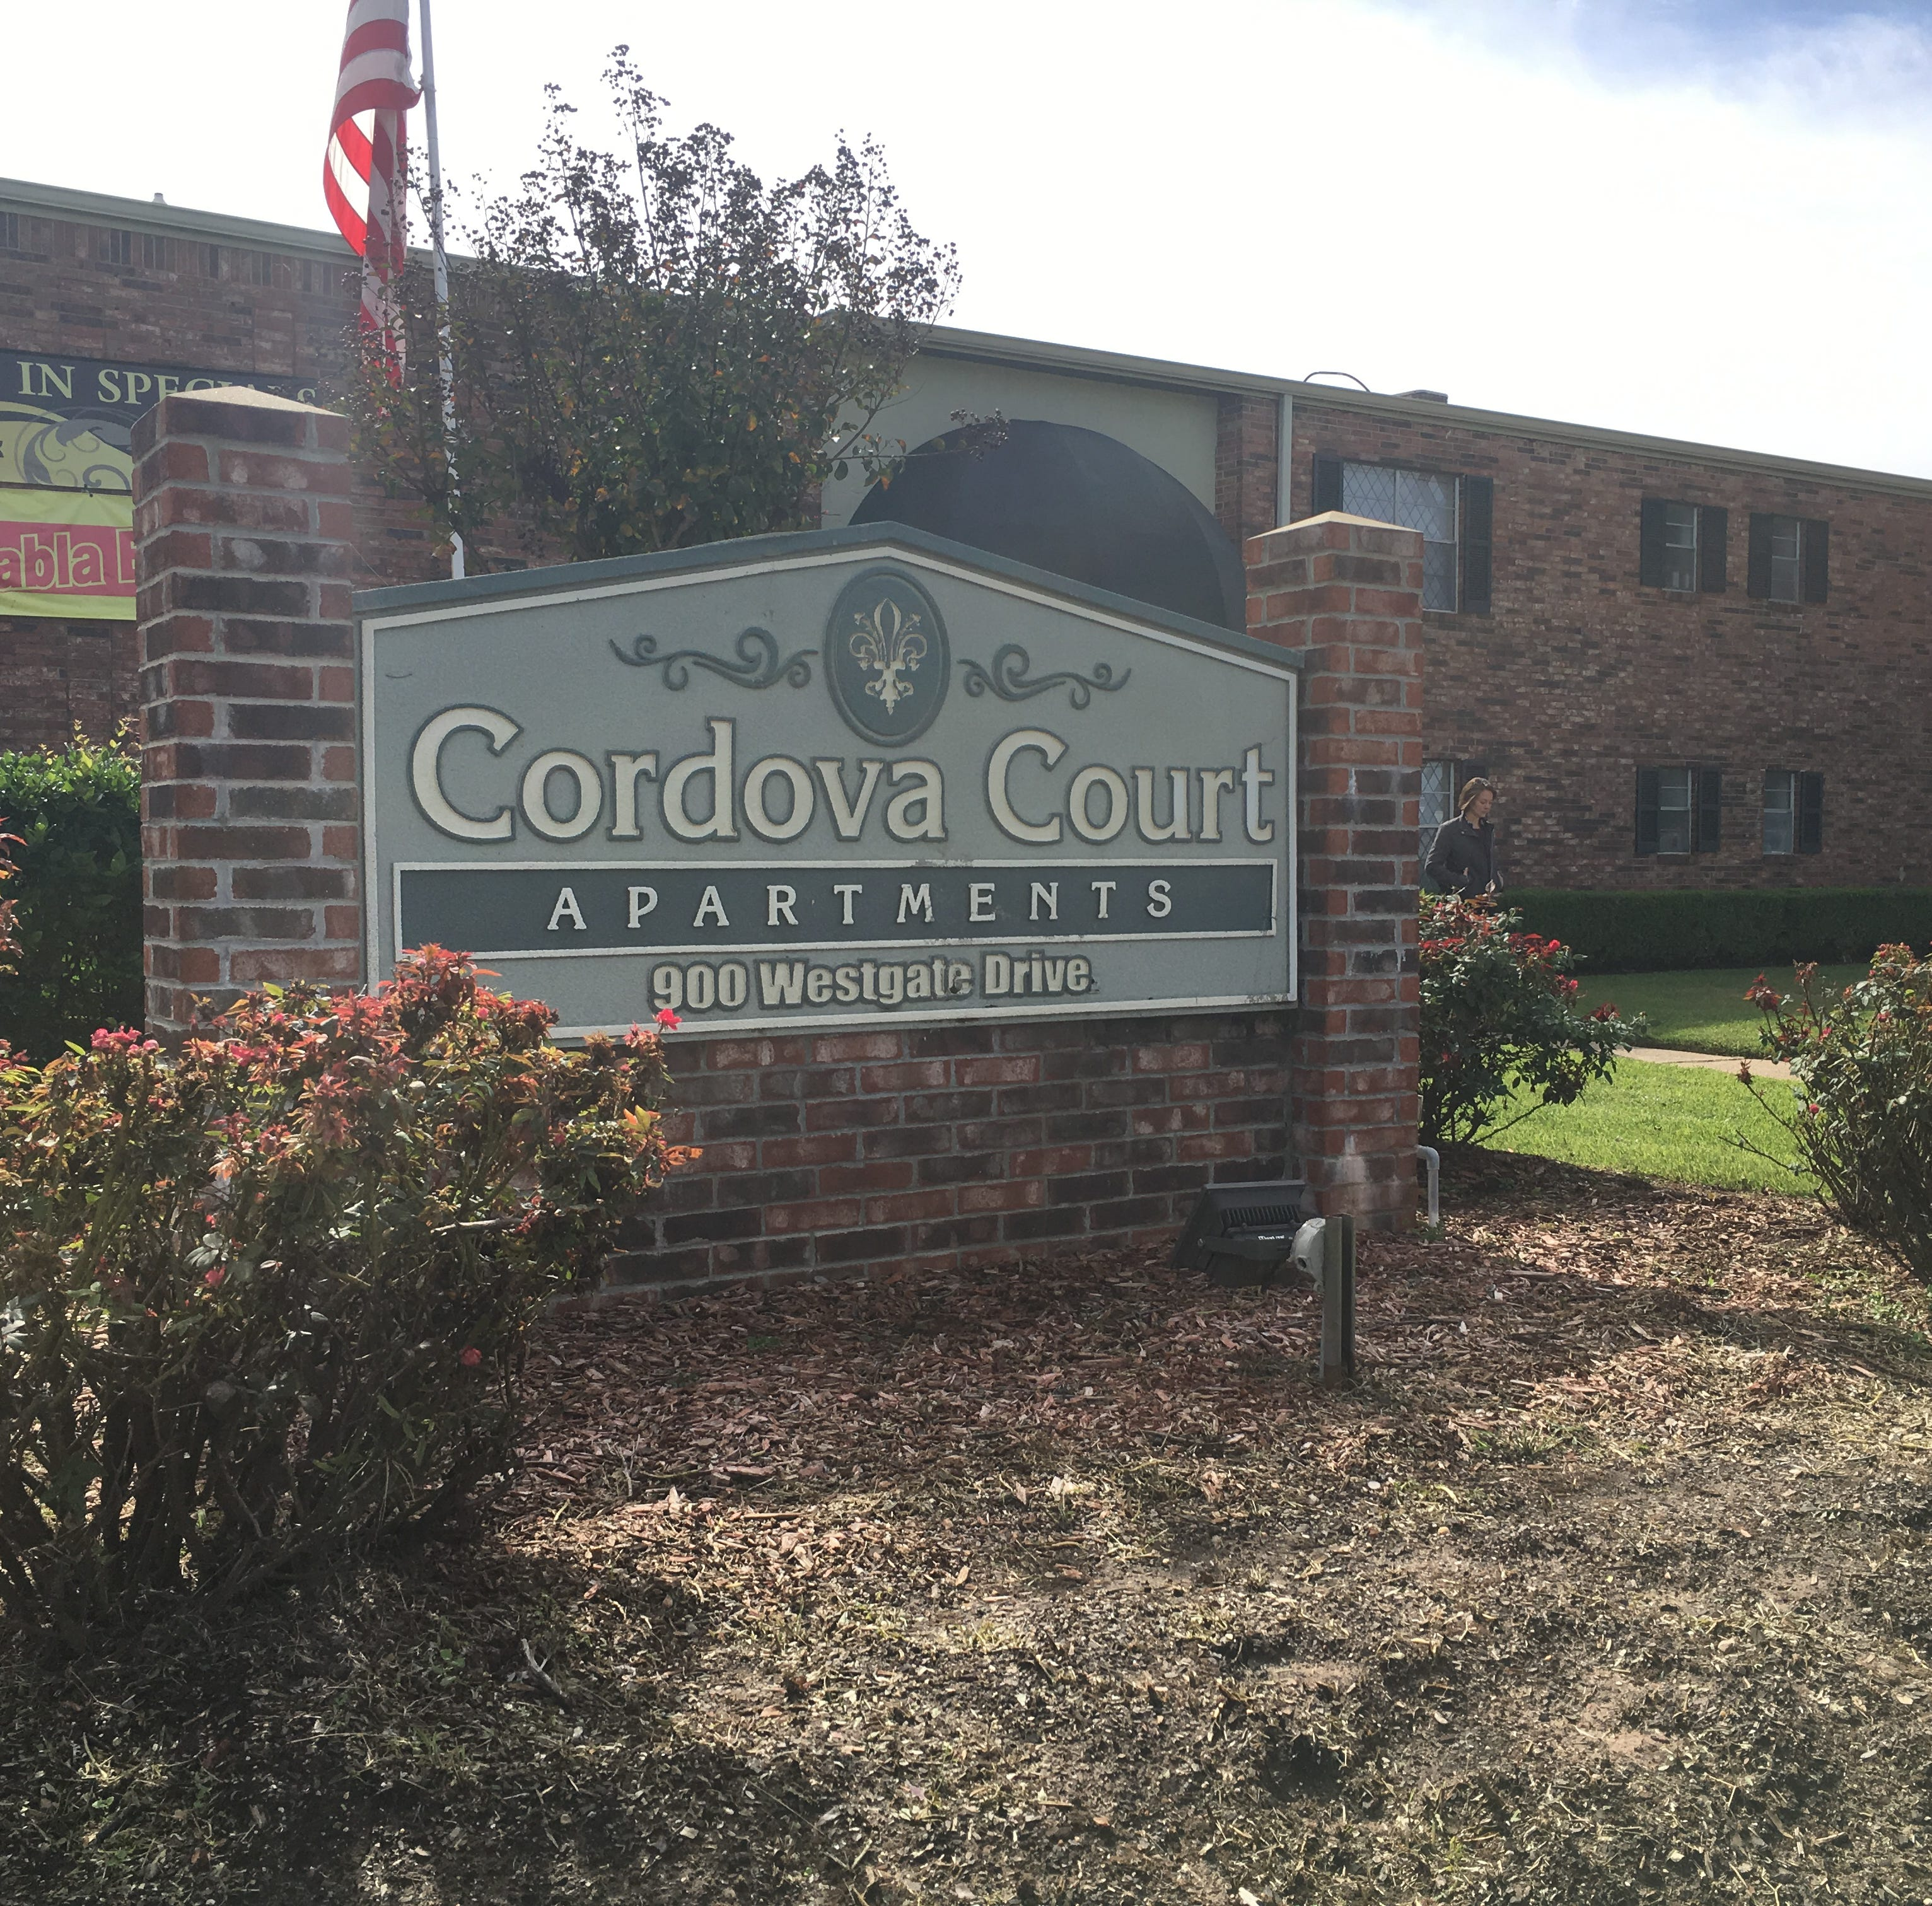 A body was found at the Cordova Court Apartments in Bossier City on Monday.